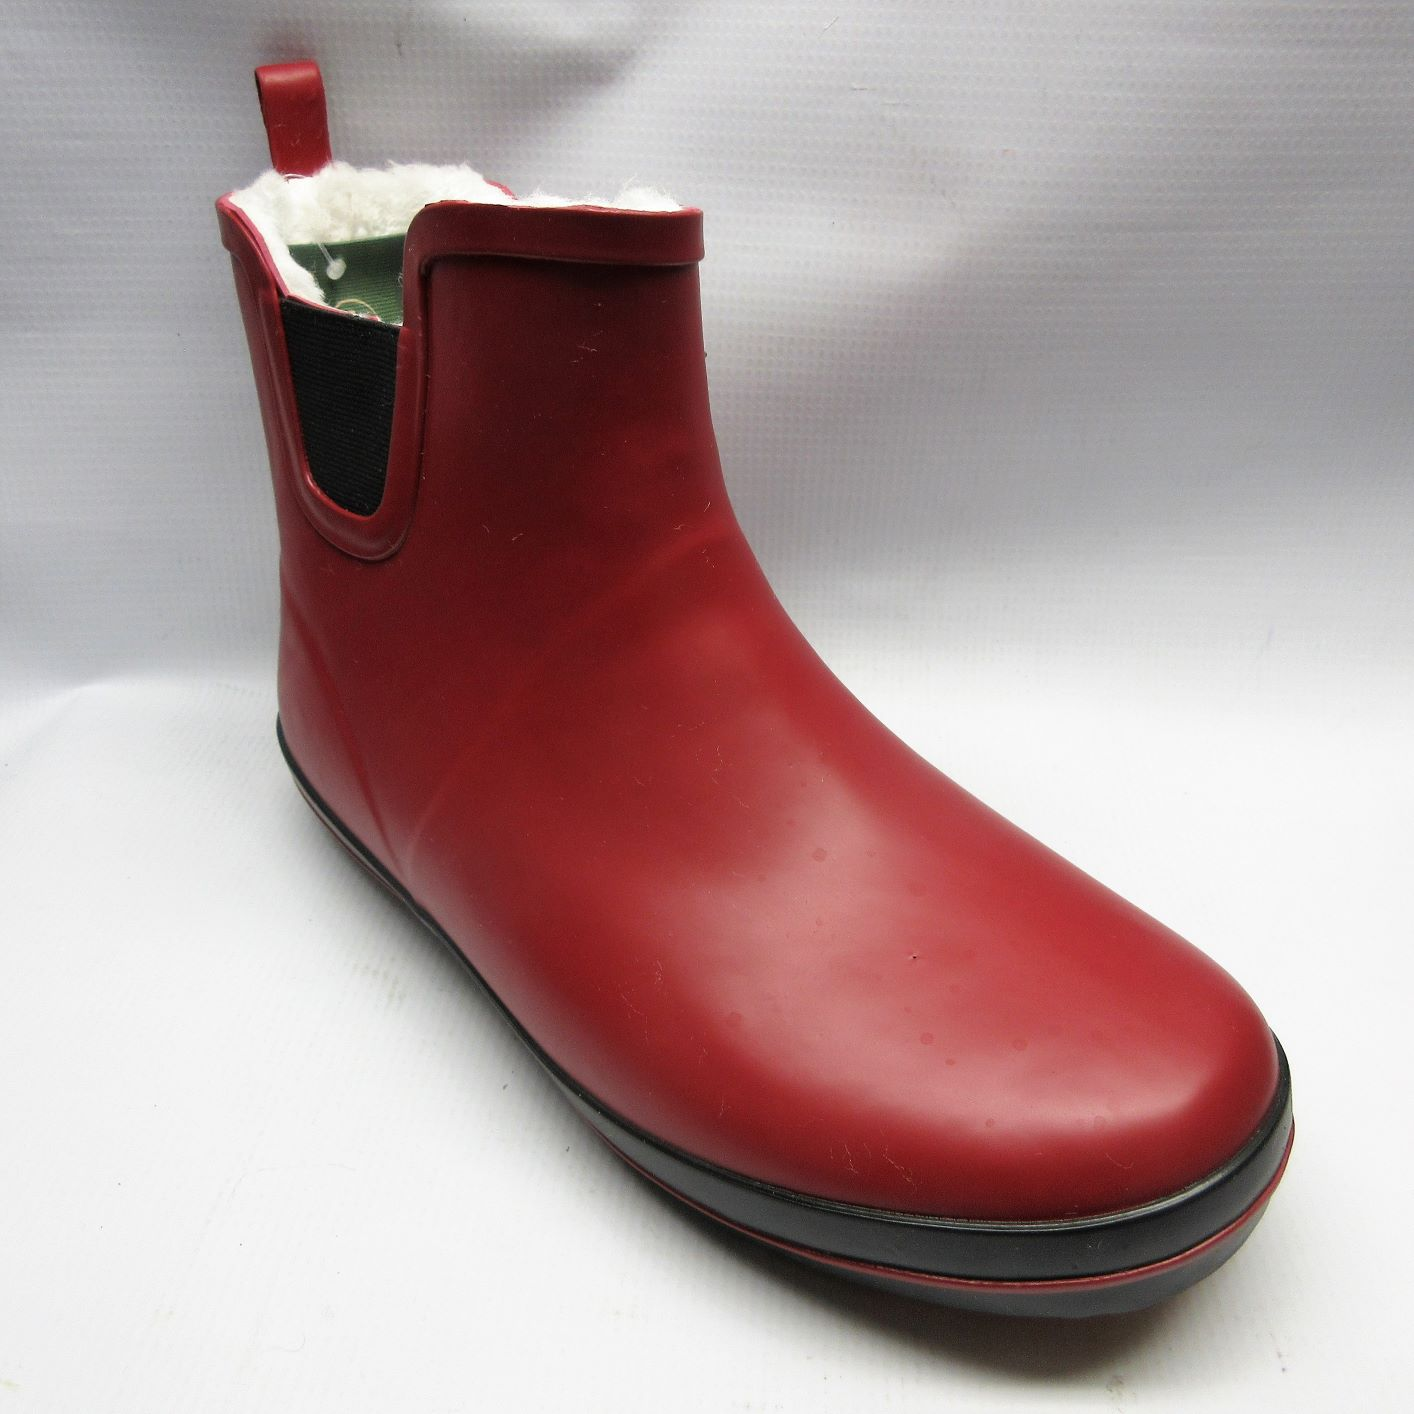 Love the rain. - All it takes is the right footwear.